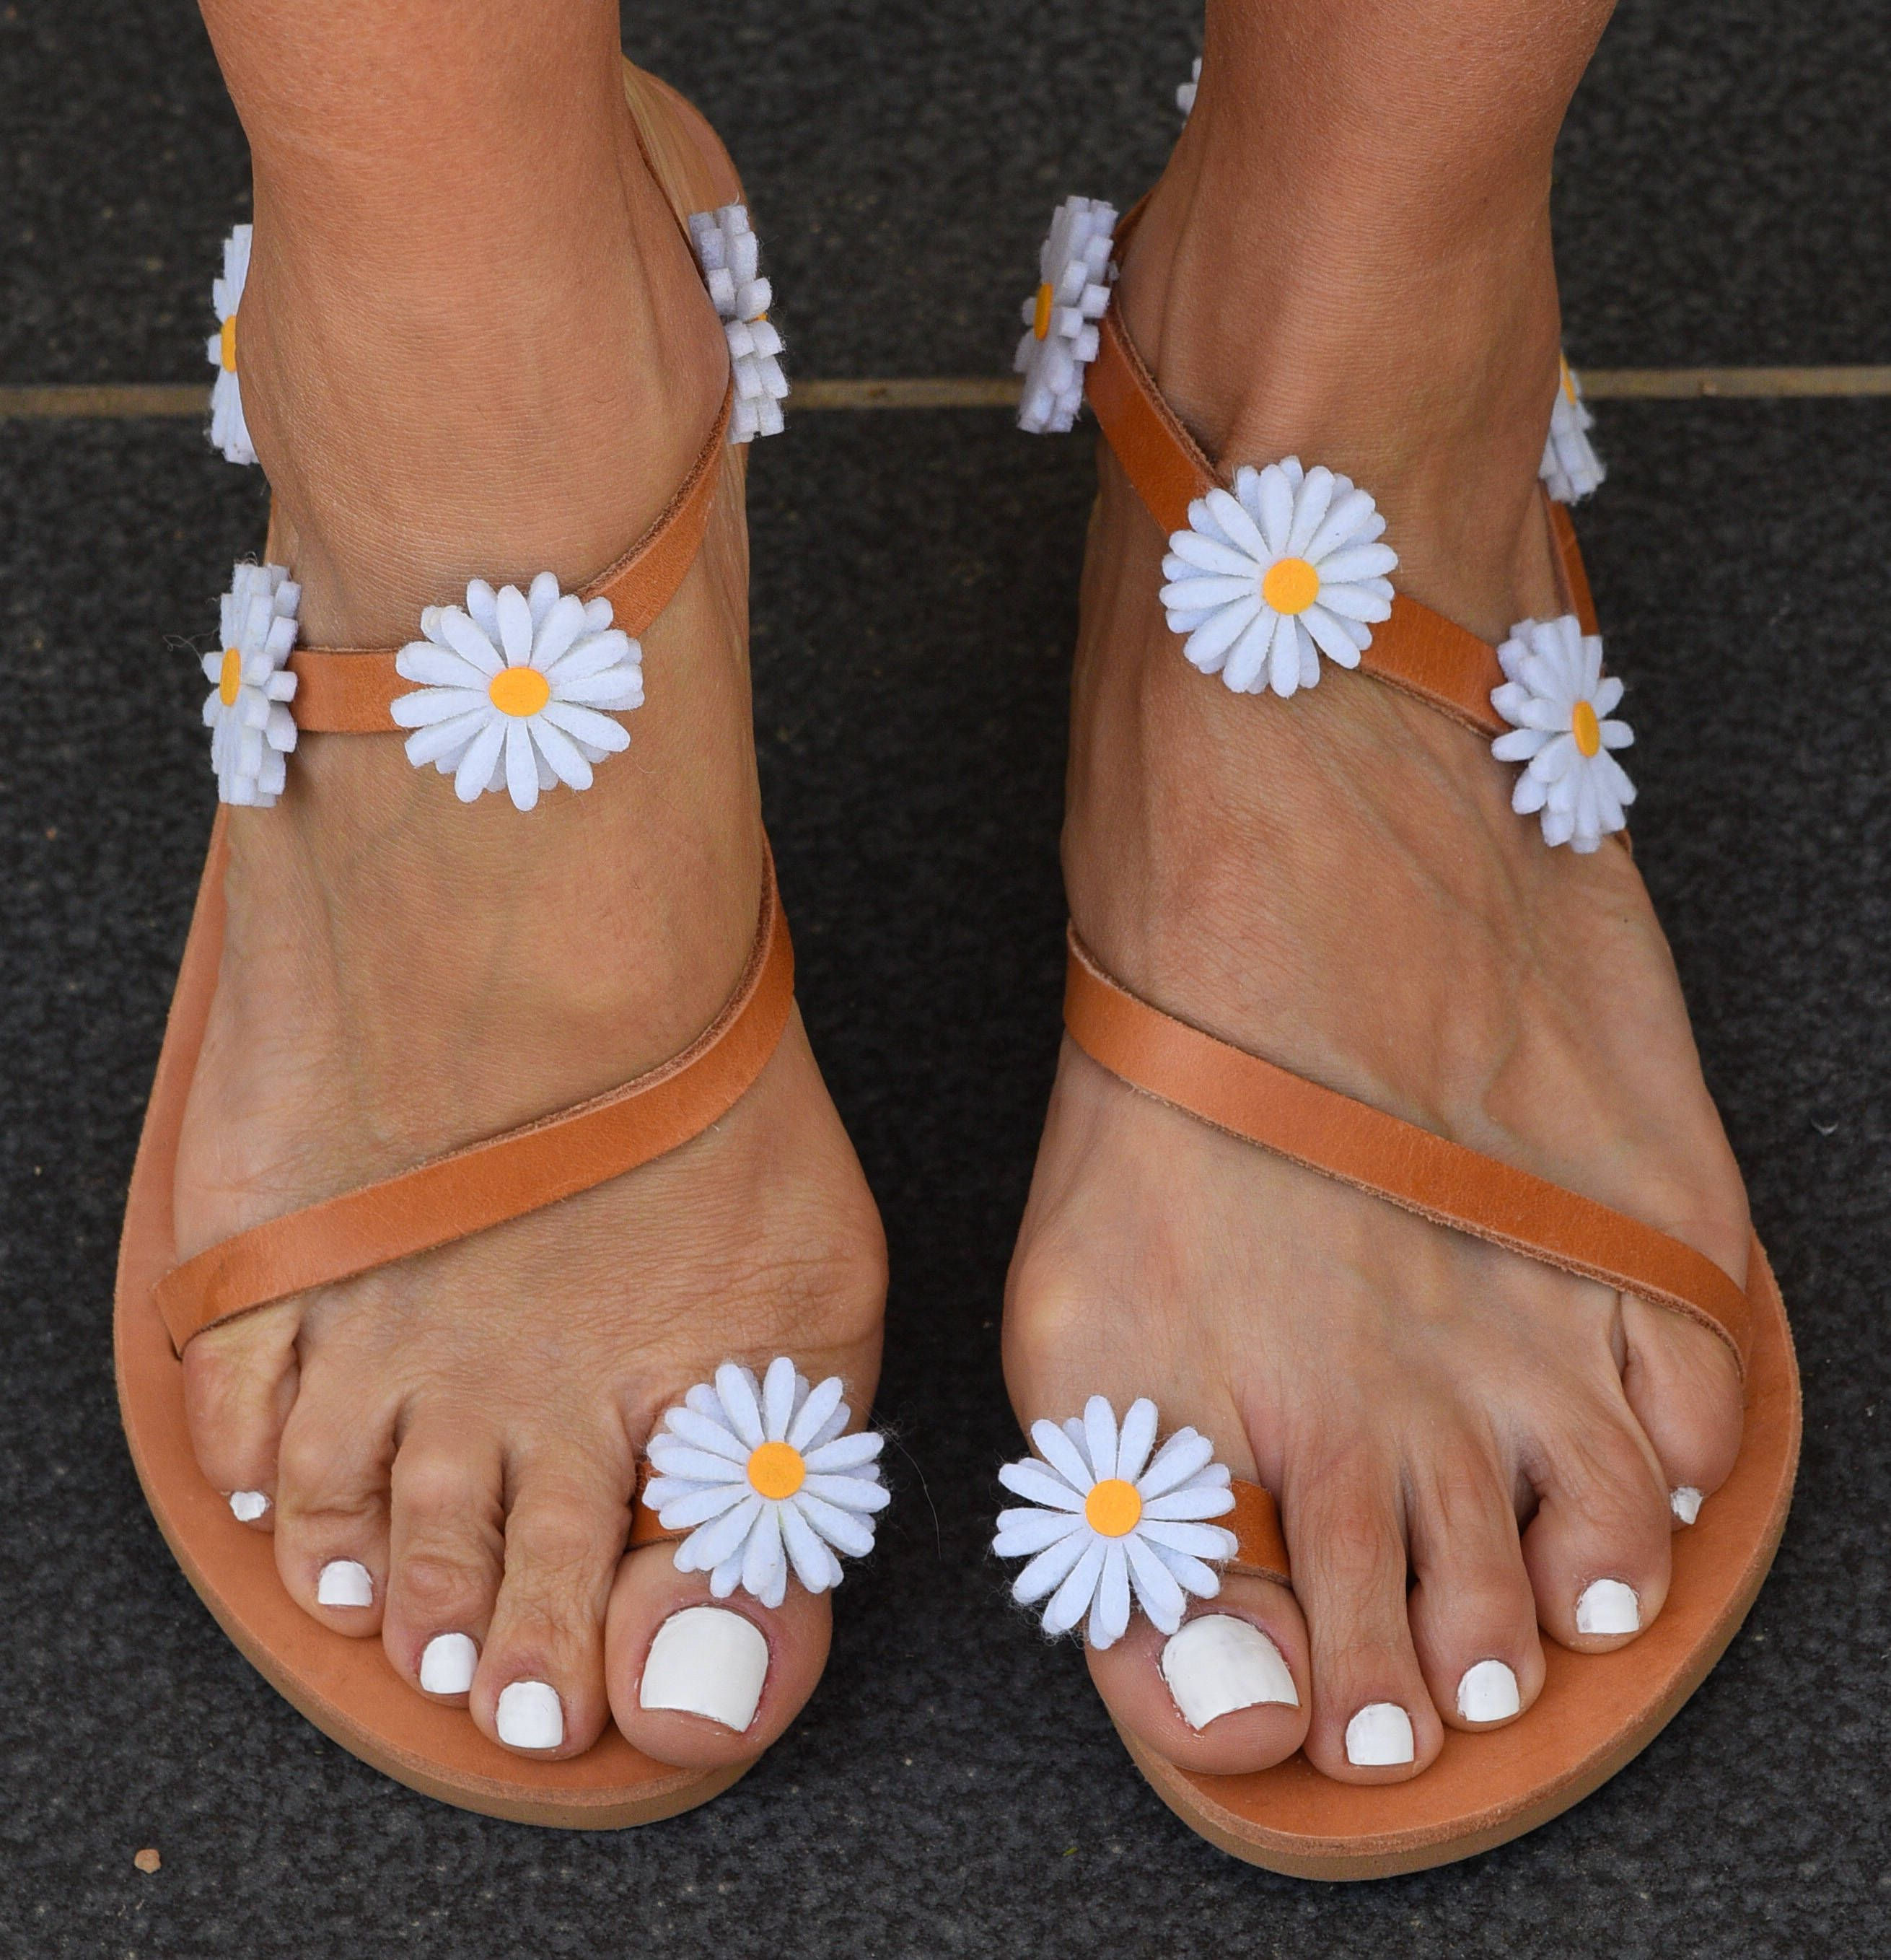 3c8f589e9a24 DAISY TOUCH greek leather sandals straps margarita flowers brown bohemian  handmade hippie by InnaHandmadeSandals on Etsy